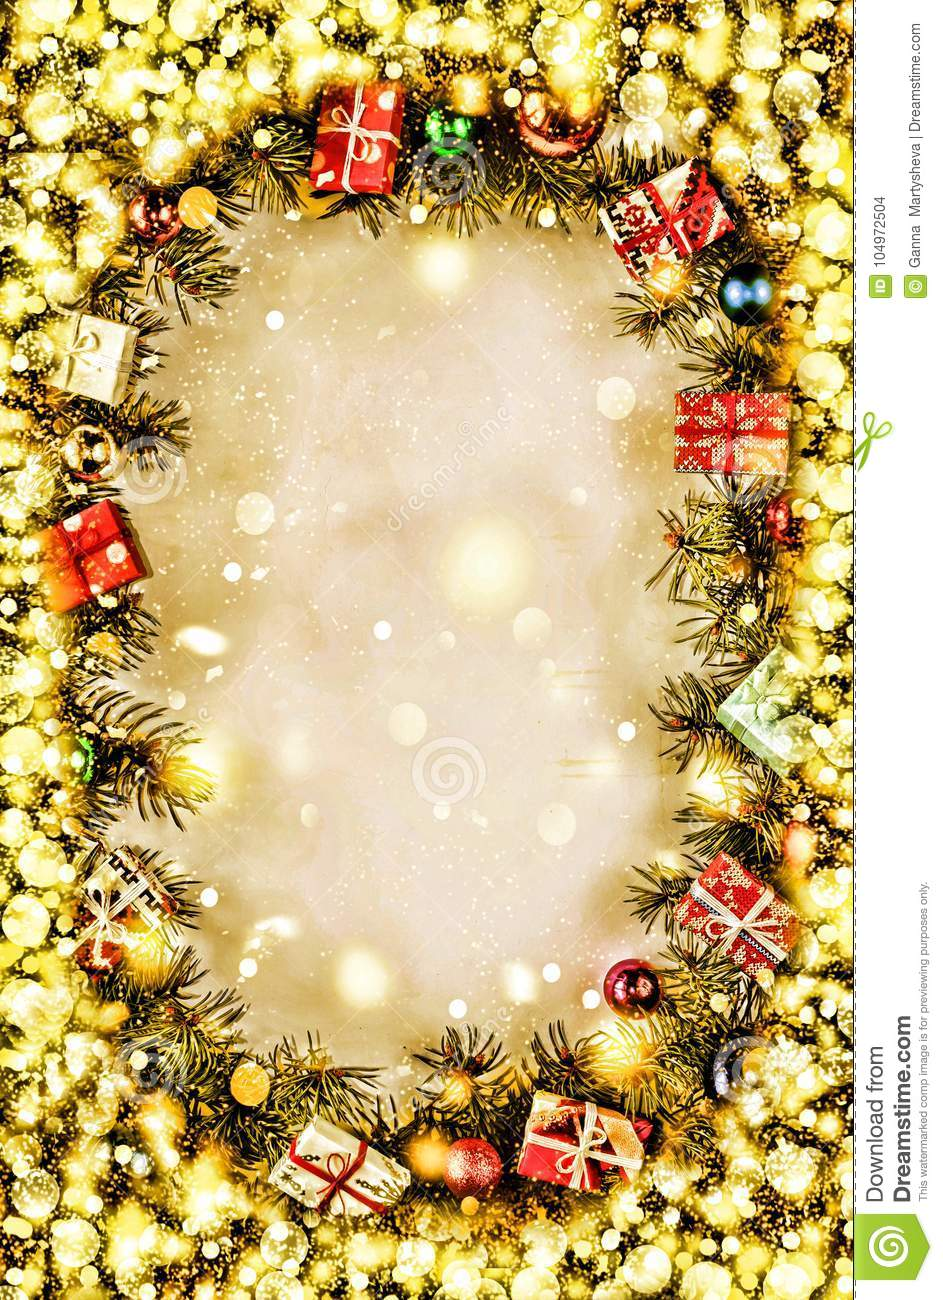 New Year. Background, frame of Christmas tree branches and Christmas decorations. Golden snow. Free space for text.